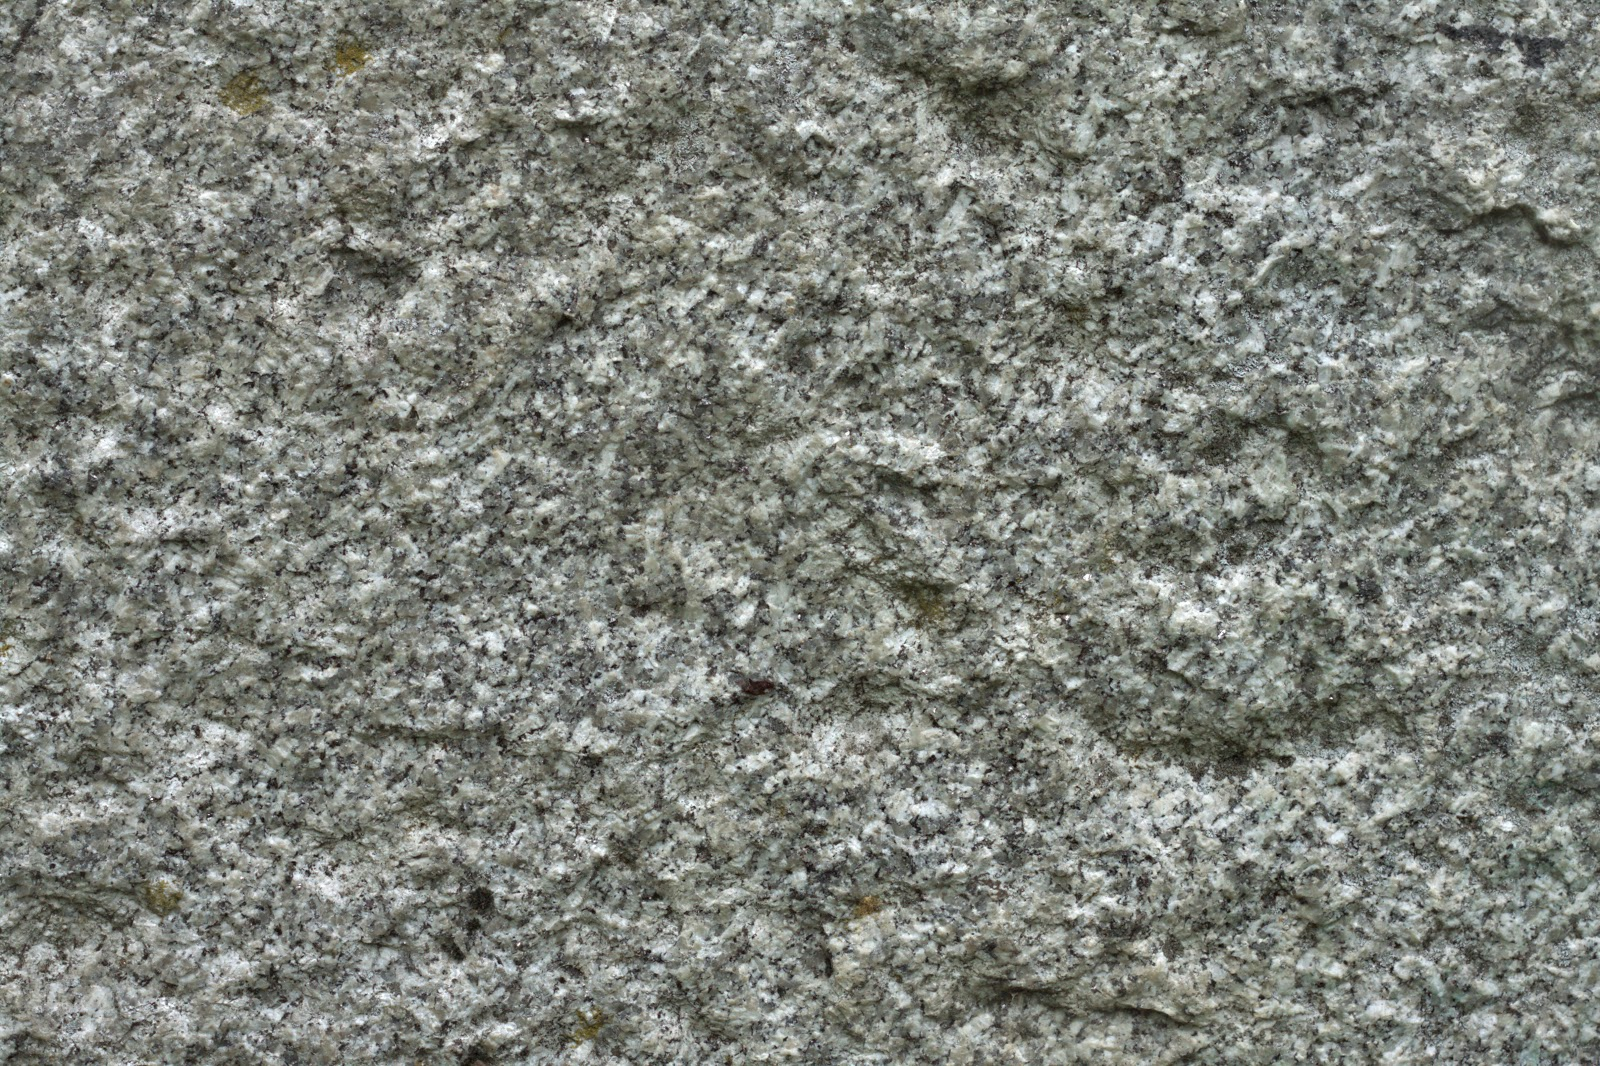 white stone texture pictures - photo #31